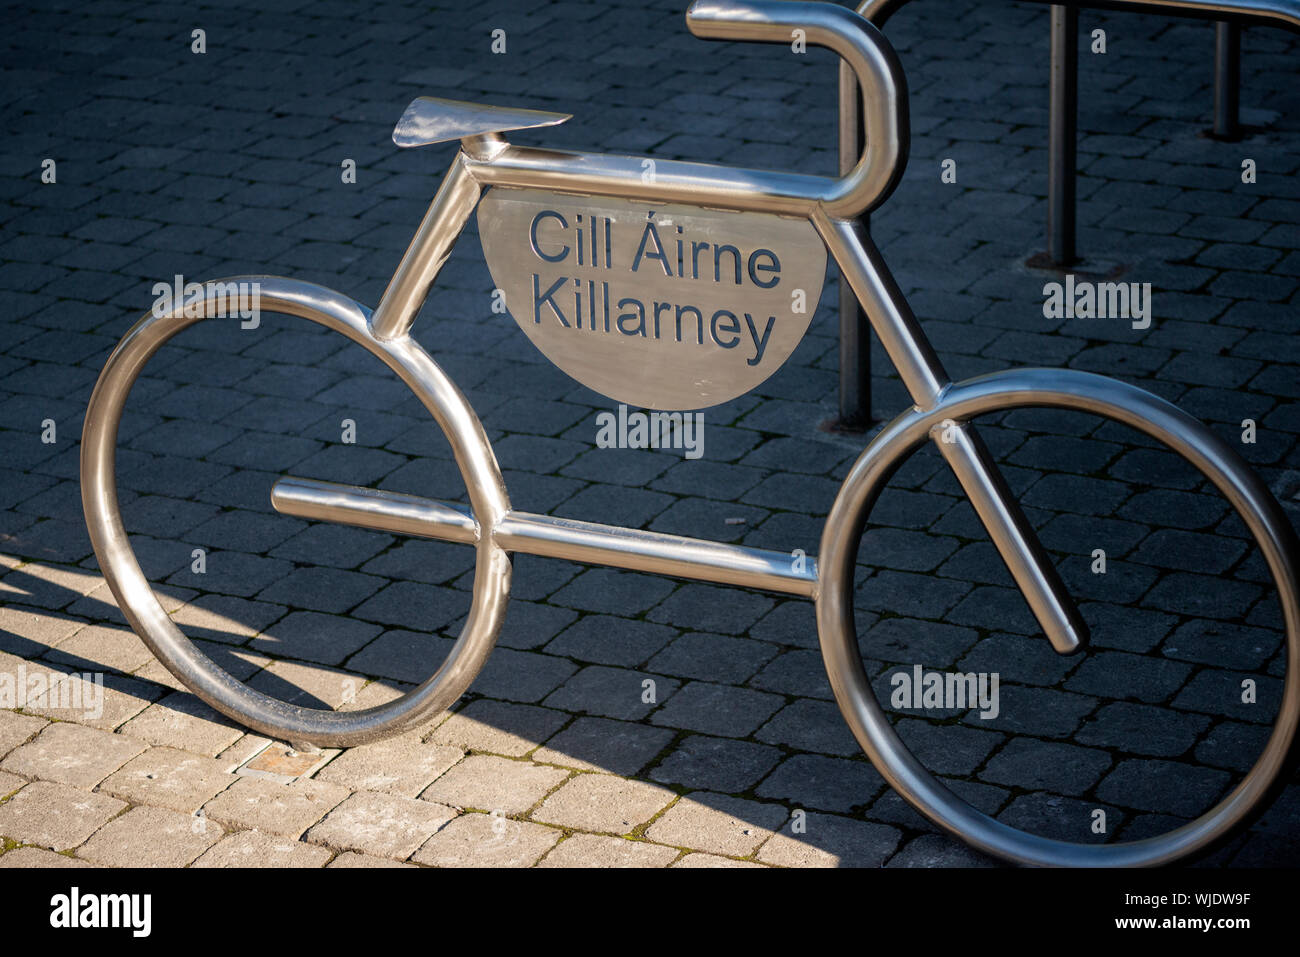 innovative-killarney-or-cill-airne-iron-